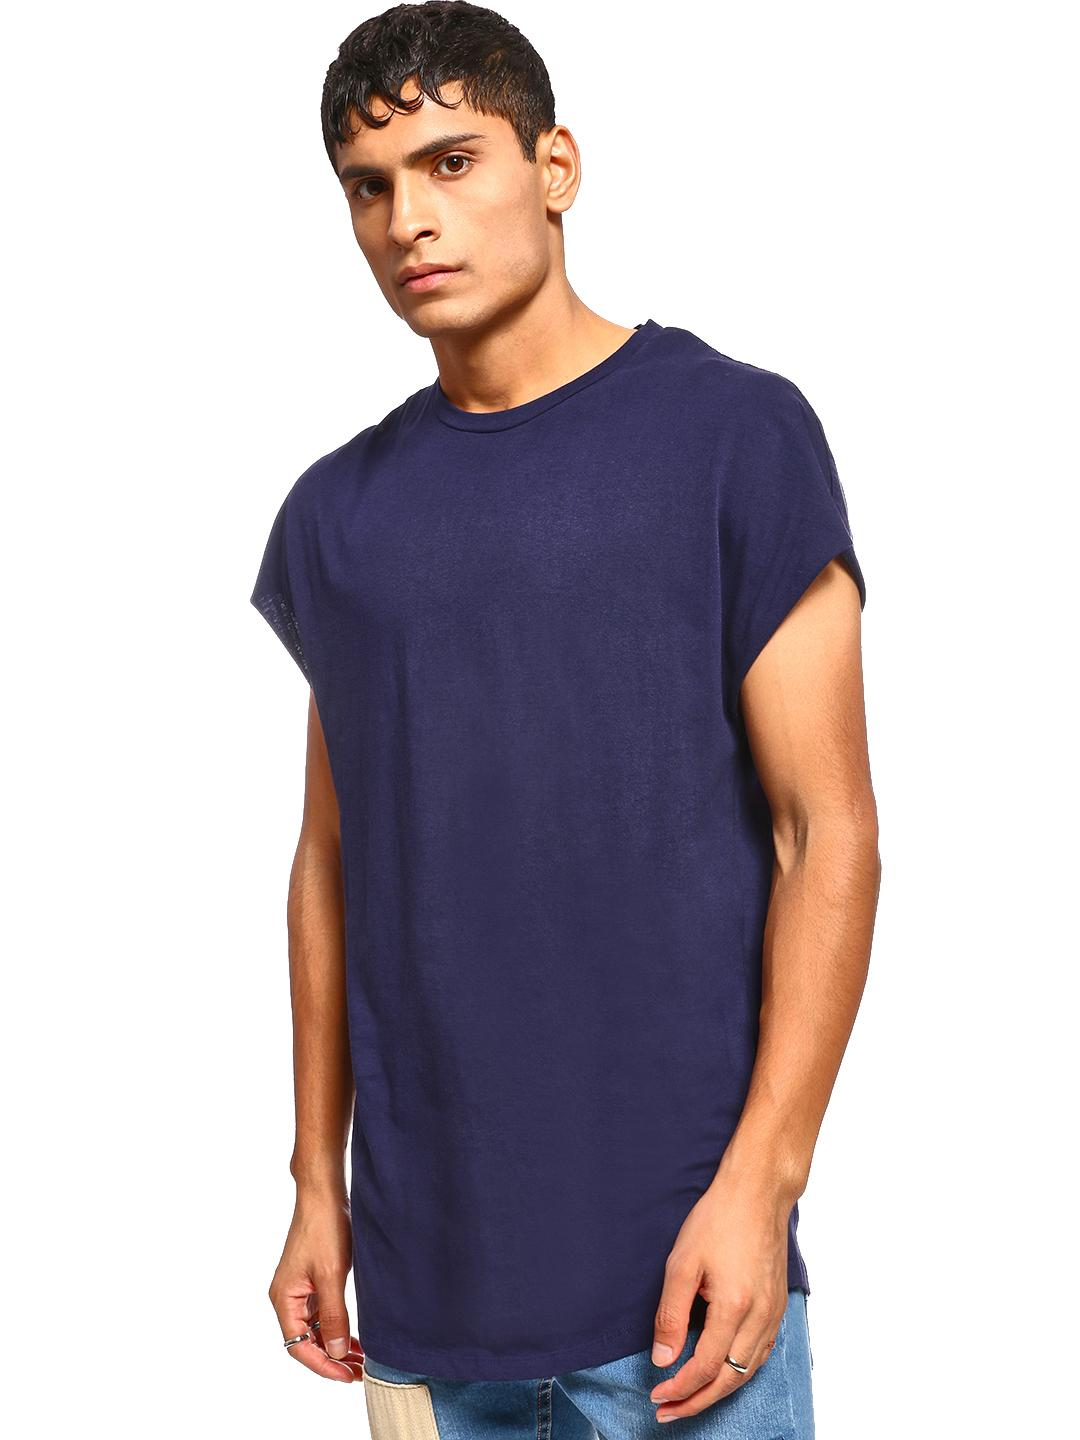 KOOVS Navy Basic Cap Sleeve T-Shirt 1